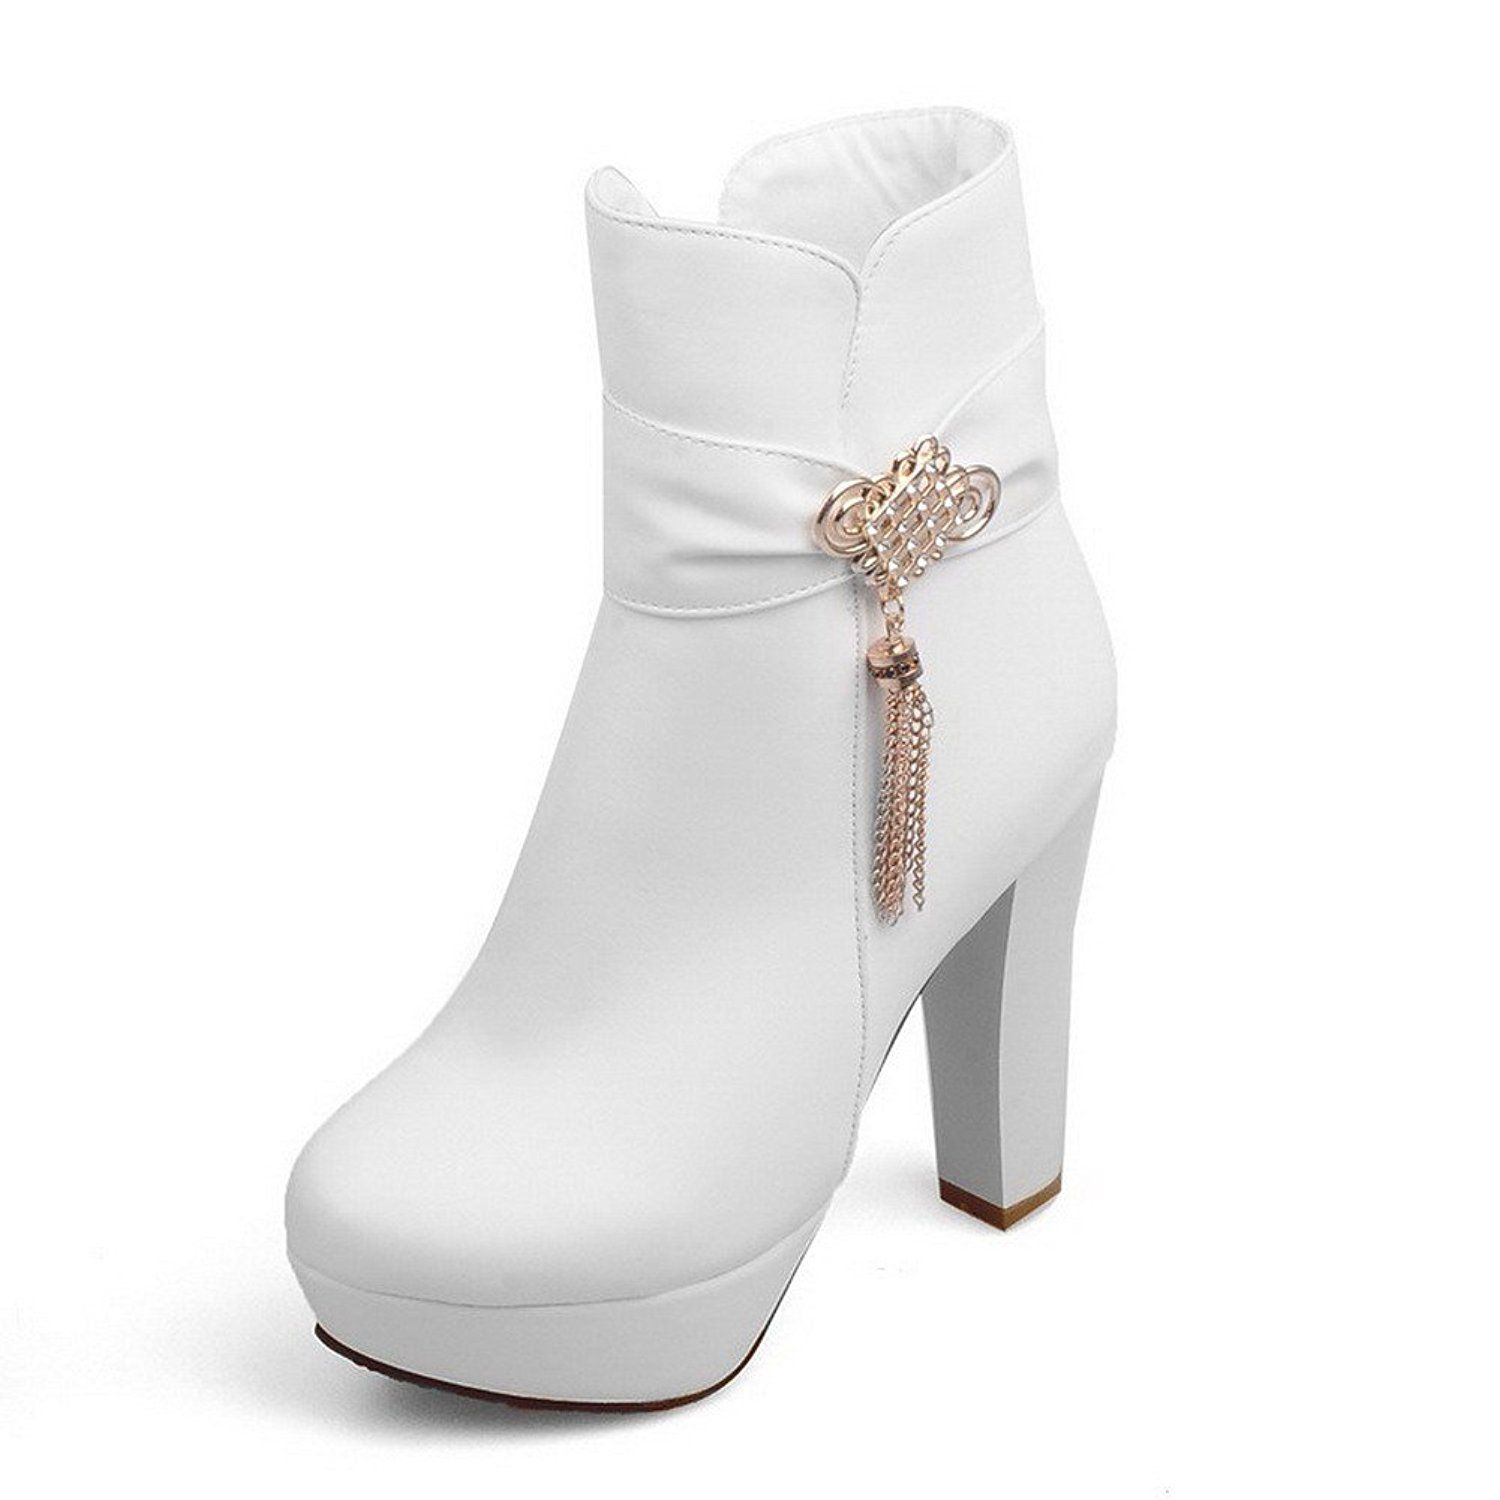 Women's Low-Top Solid Chains Closed Round Toe High-Heels Boots